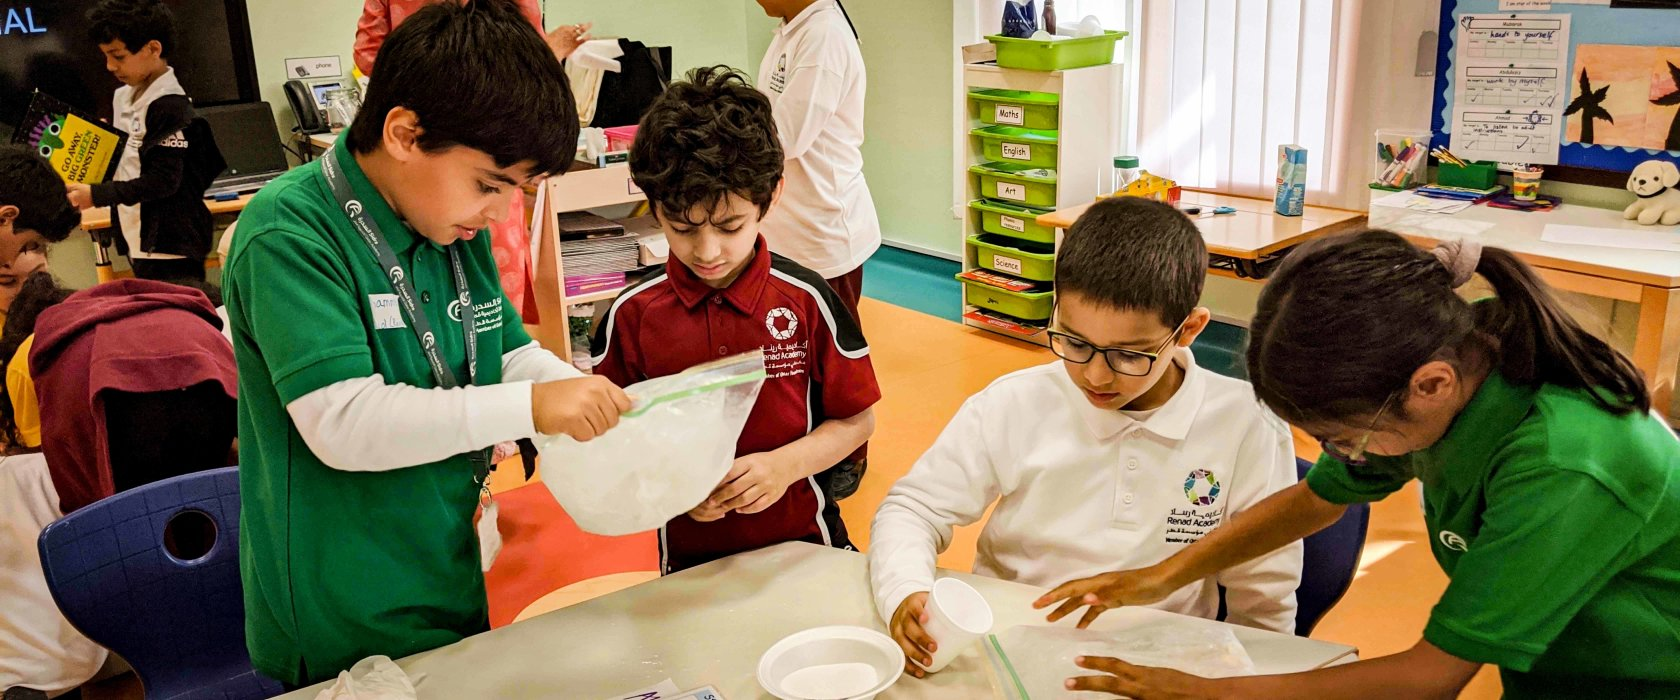 QF schools connect to break down Autism barriers through the power of friendship